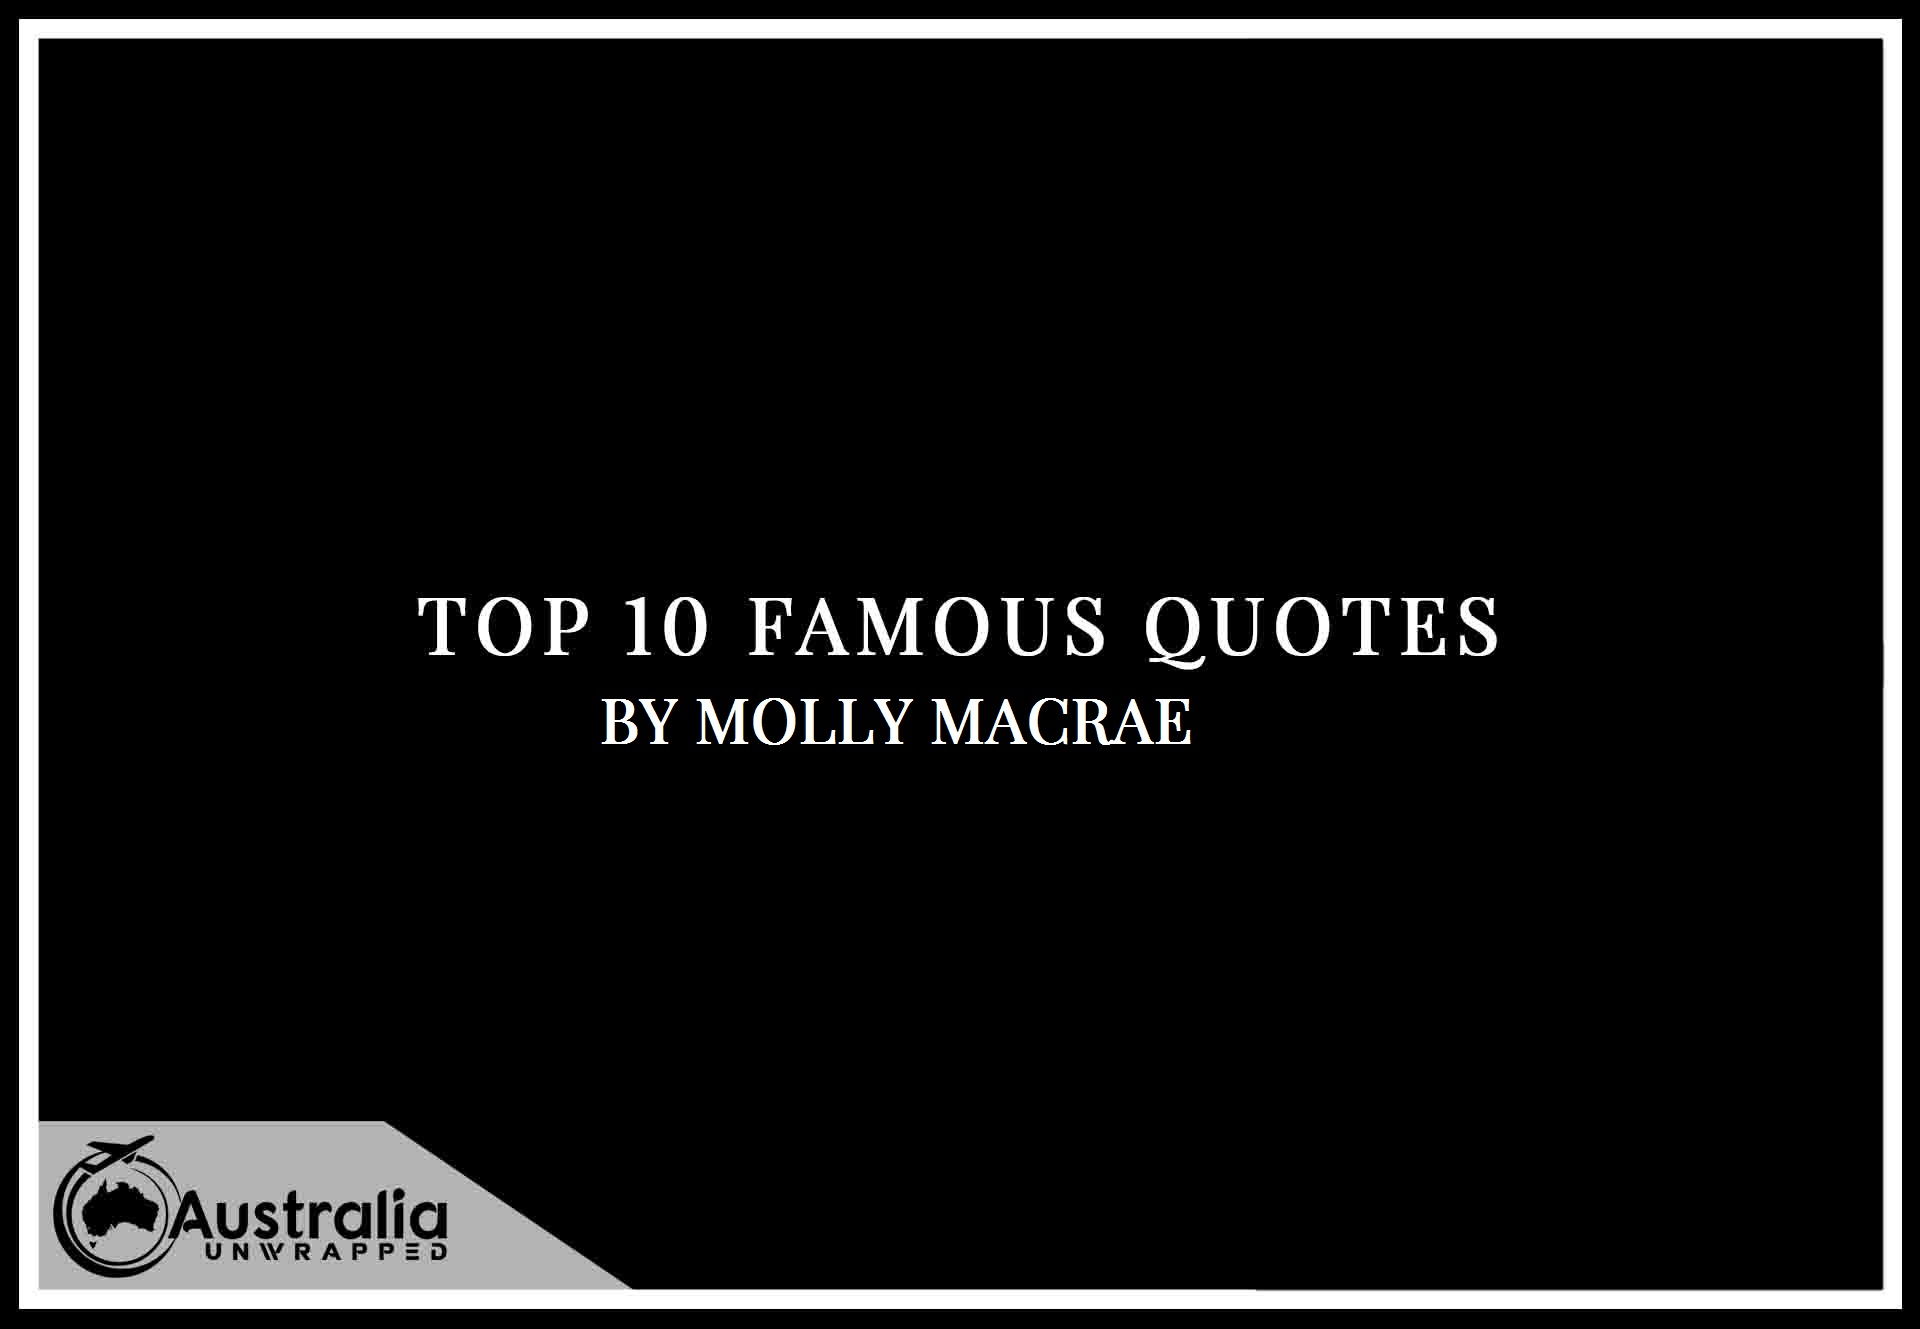 Molly MacRae's Top 10 Popular and Famous Quotes